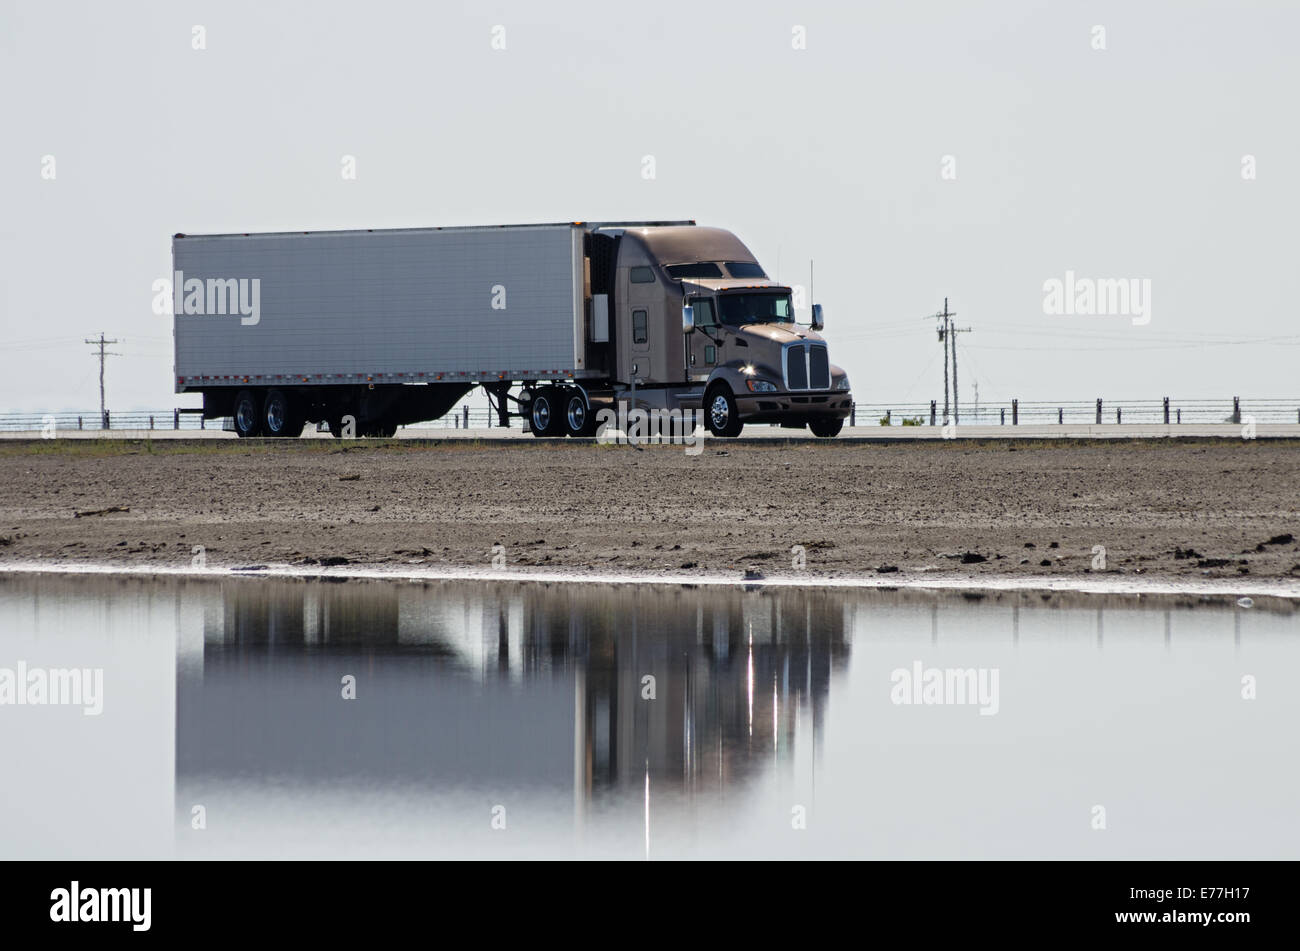 tractor trailer semi  truck driving on a highway causeway with reflection in water - Stock Image